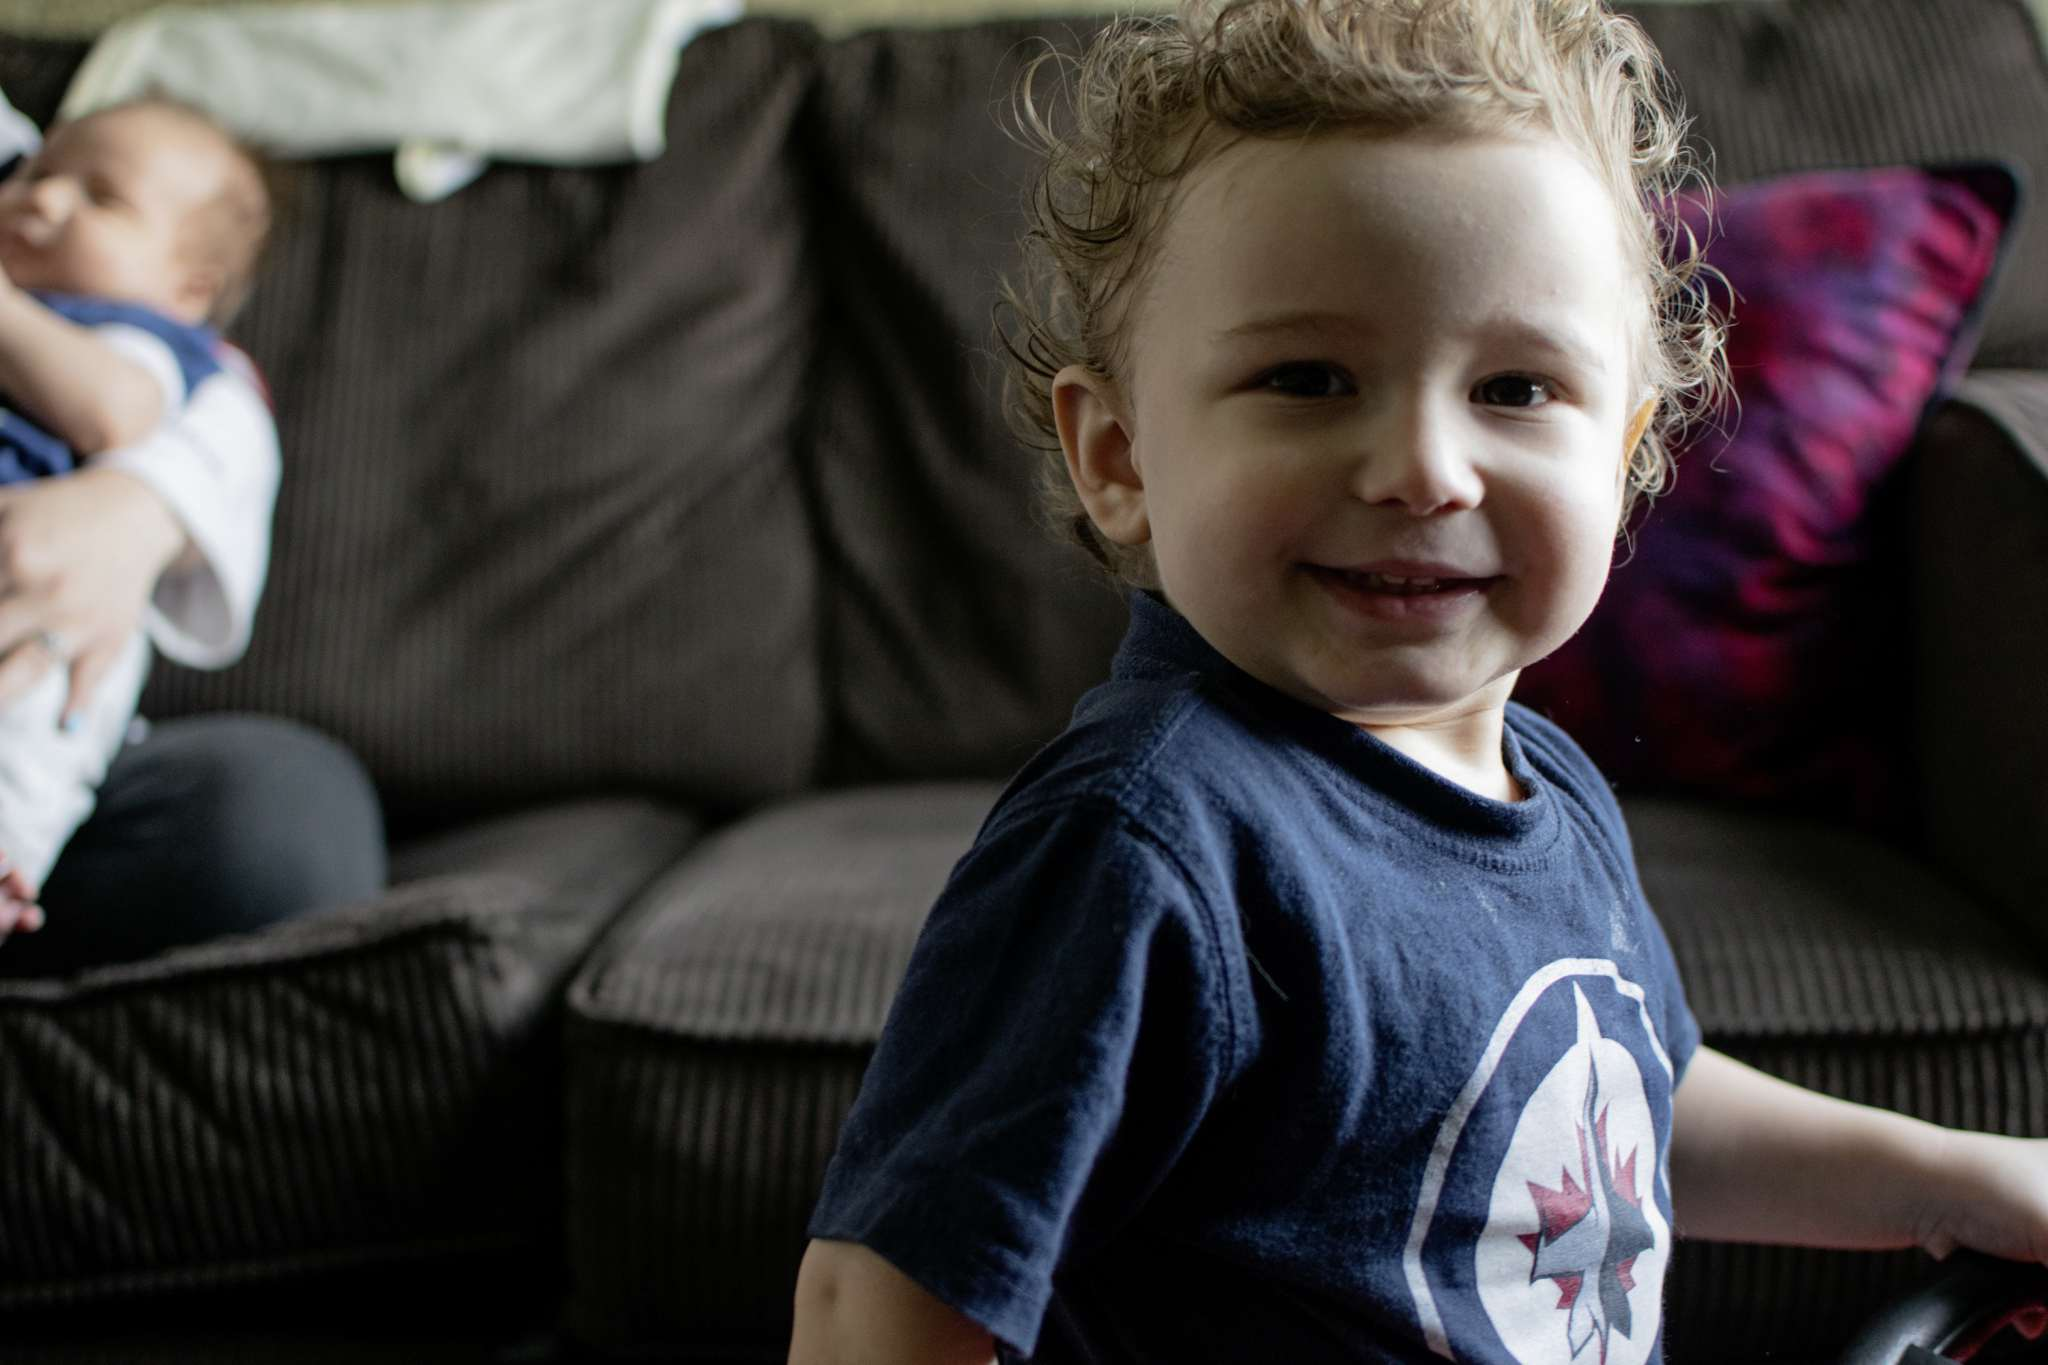 Two-year-old Xavier Traverse smiles at the camera.